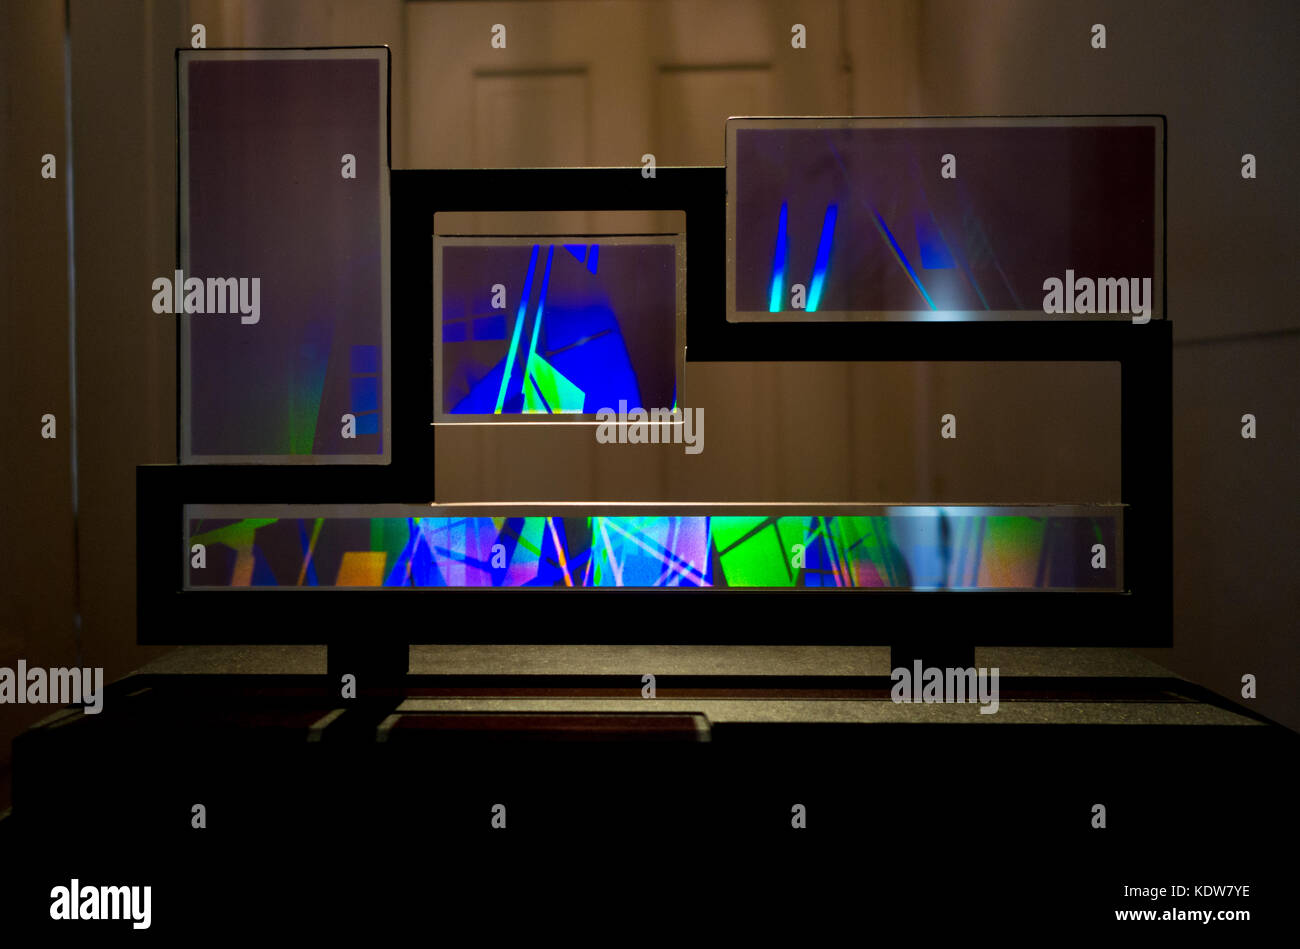 Holograms - holographic art - at the Holocenter - Center for the Holographic Arts, a seasonal art center located - Stock Image